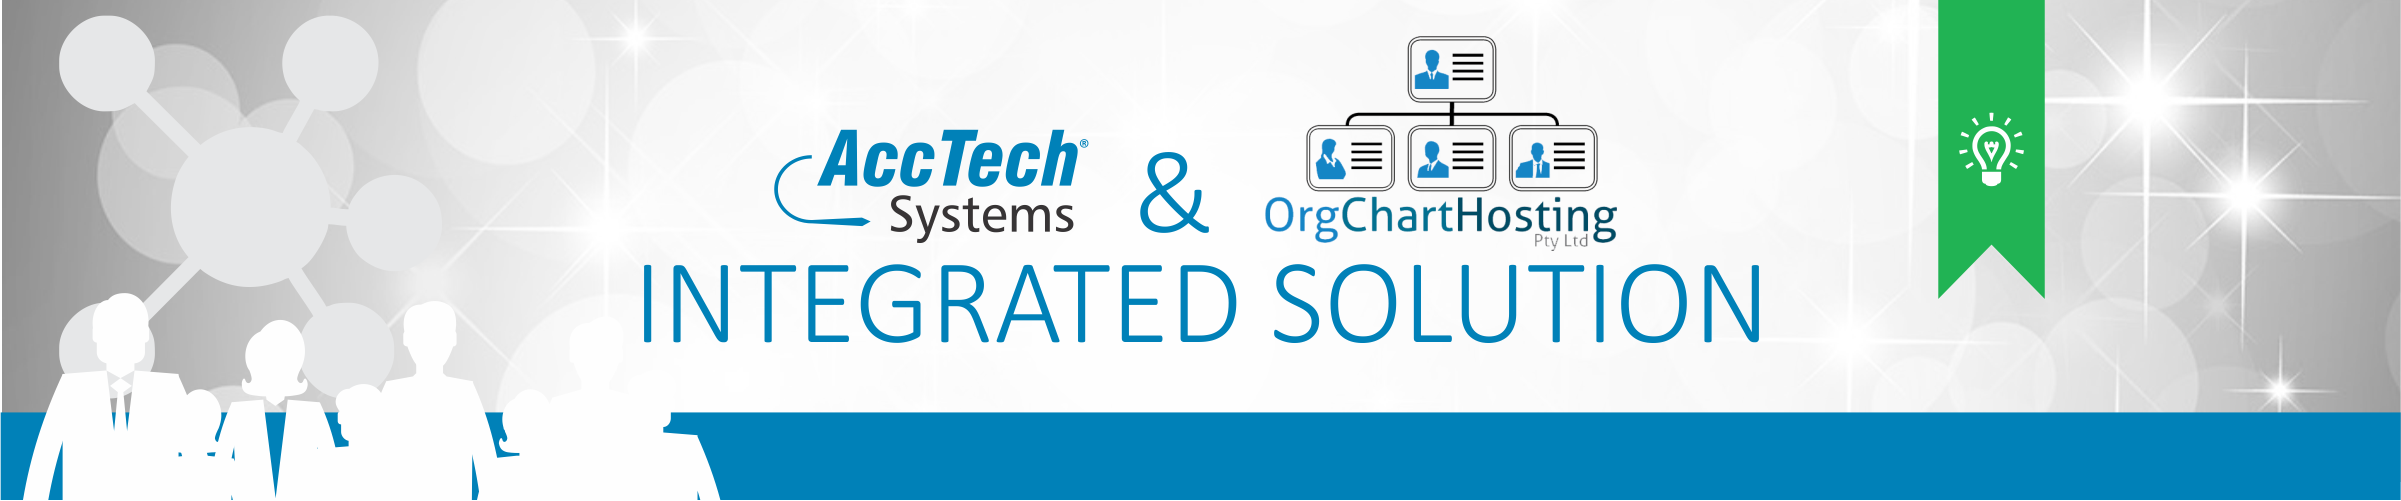 AccTech Systems and OrgChart integrated solution